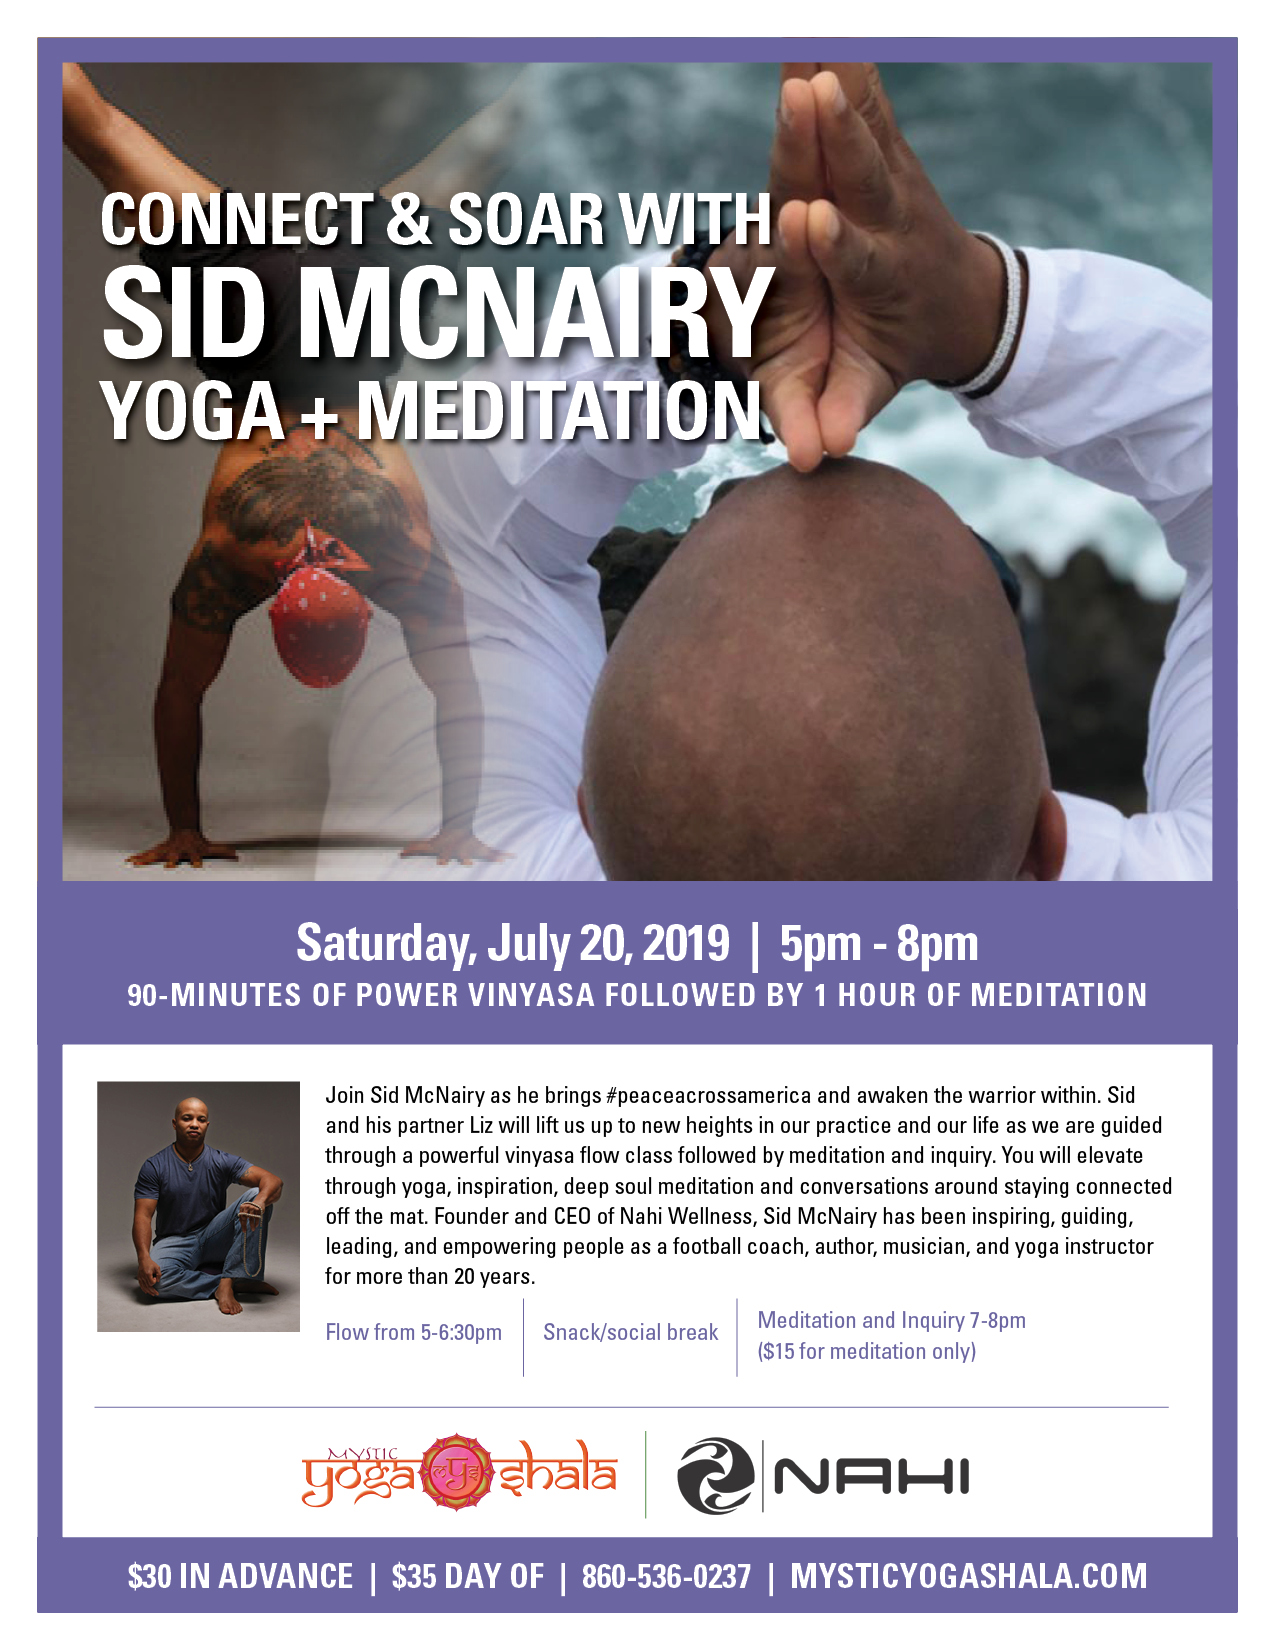 sid_yoga_meditation_flyer_2019 (1).jpg